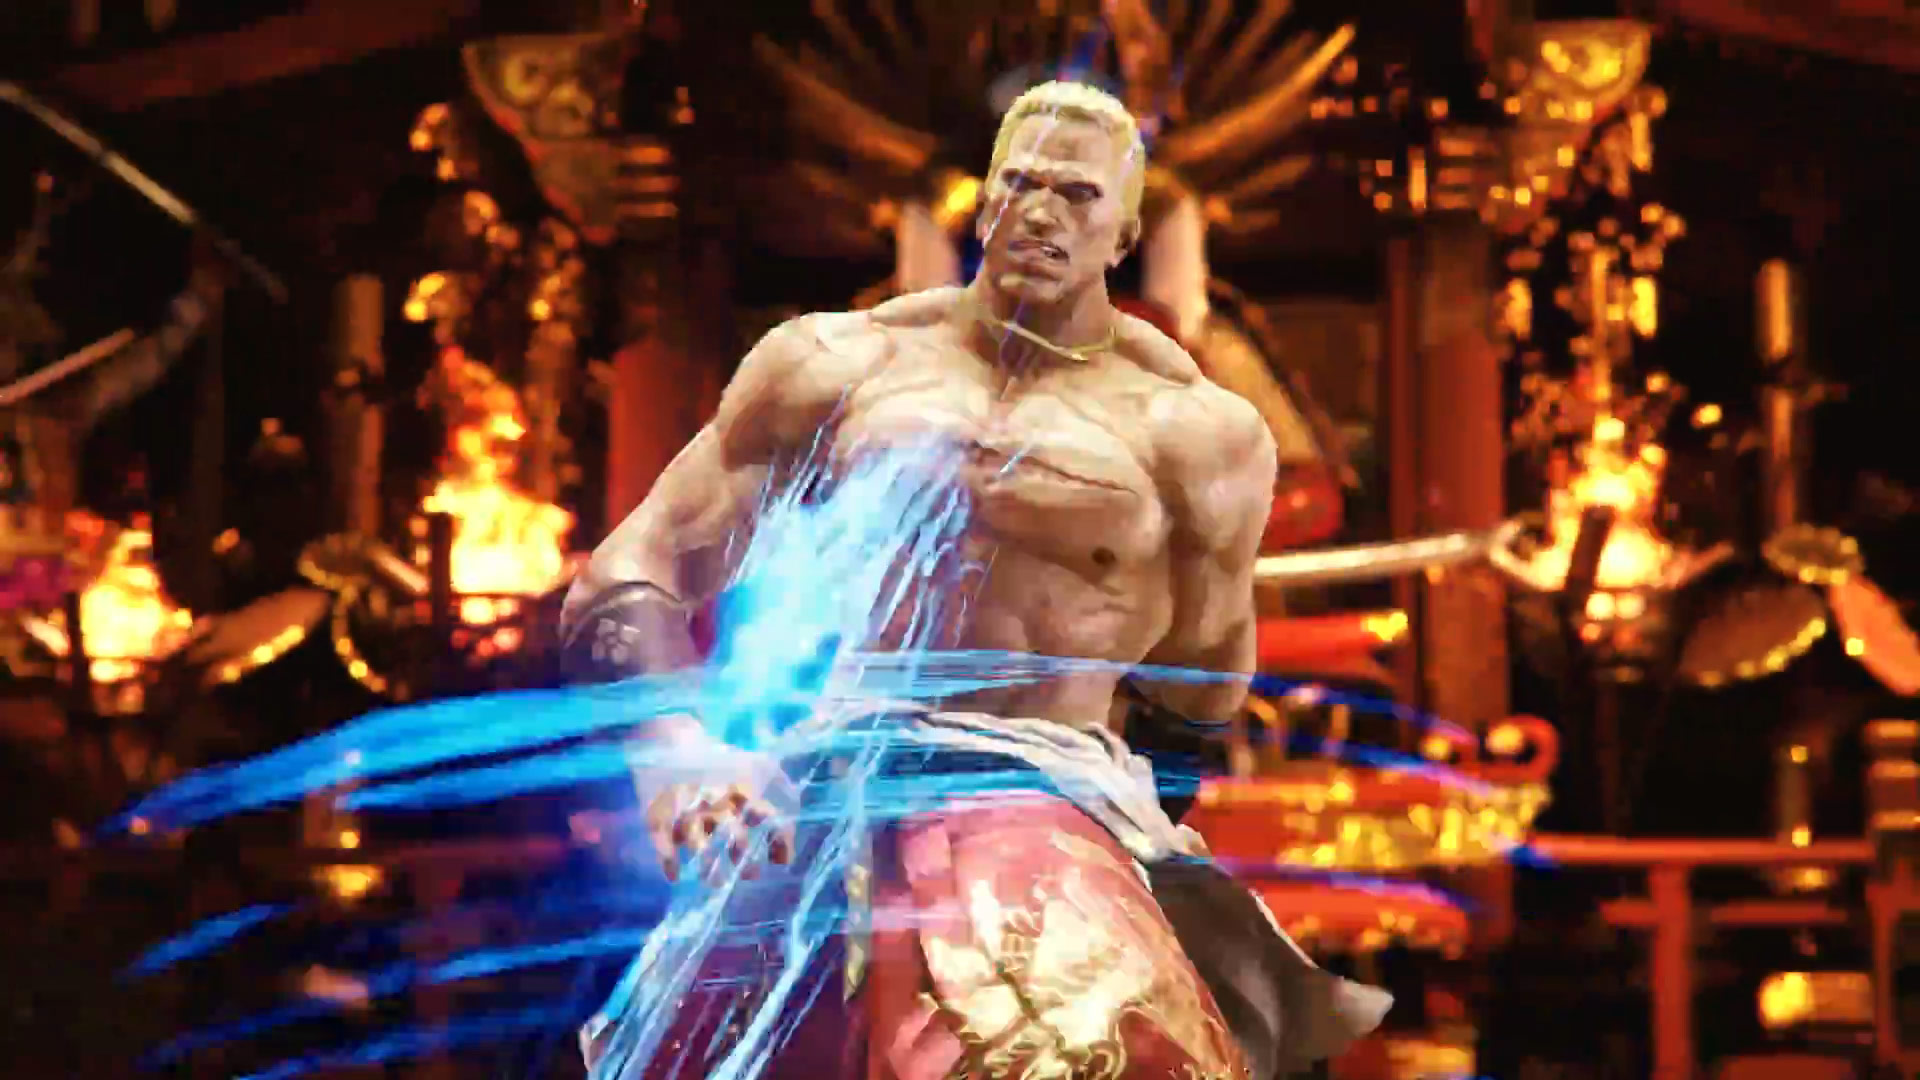 Geese Howard Tekken 7 screen shots 9 out of 9 image gallery